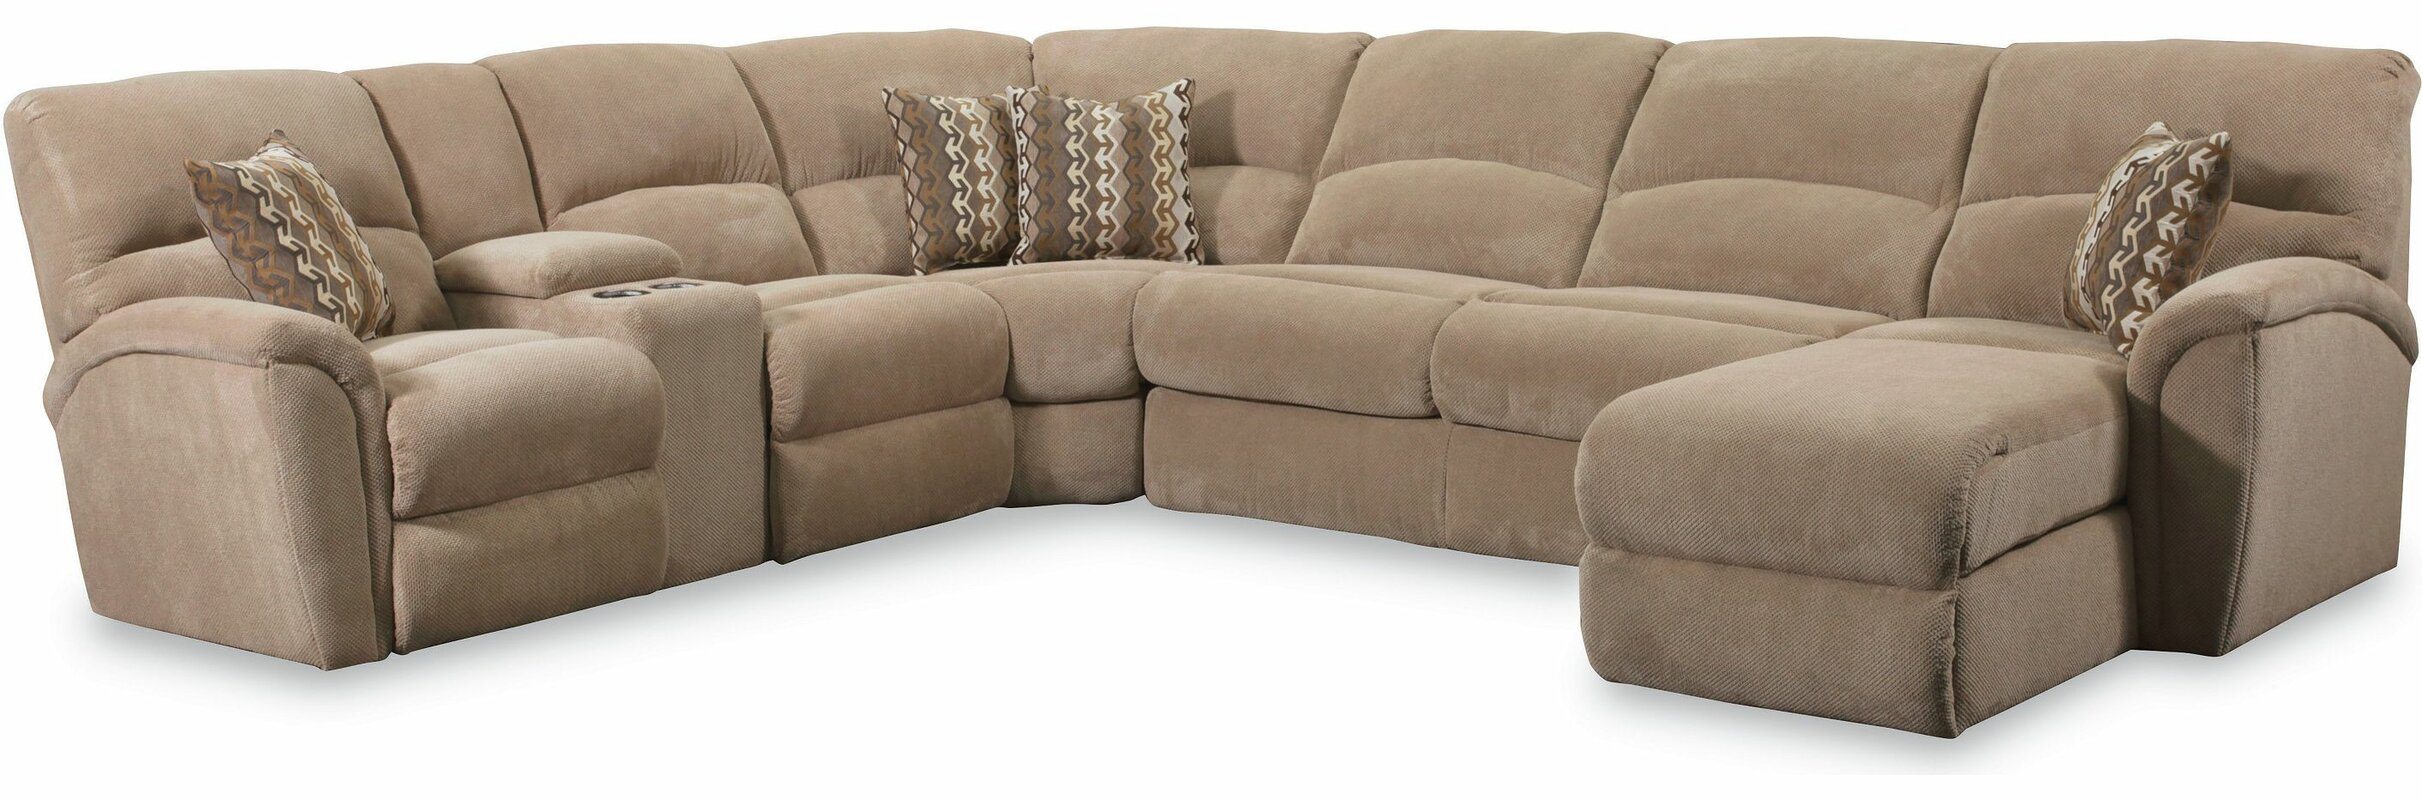 Lane Furniture Grand Torino Reclining Sectional & Reviews